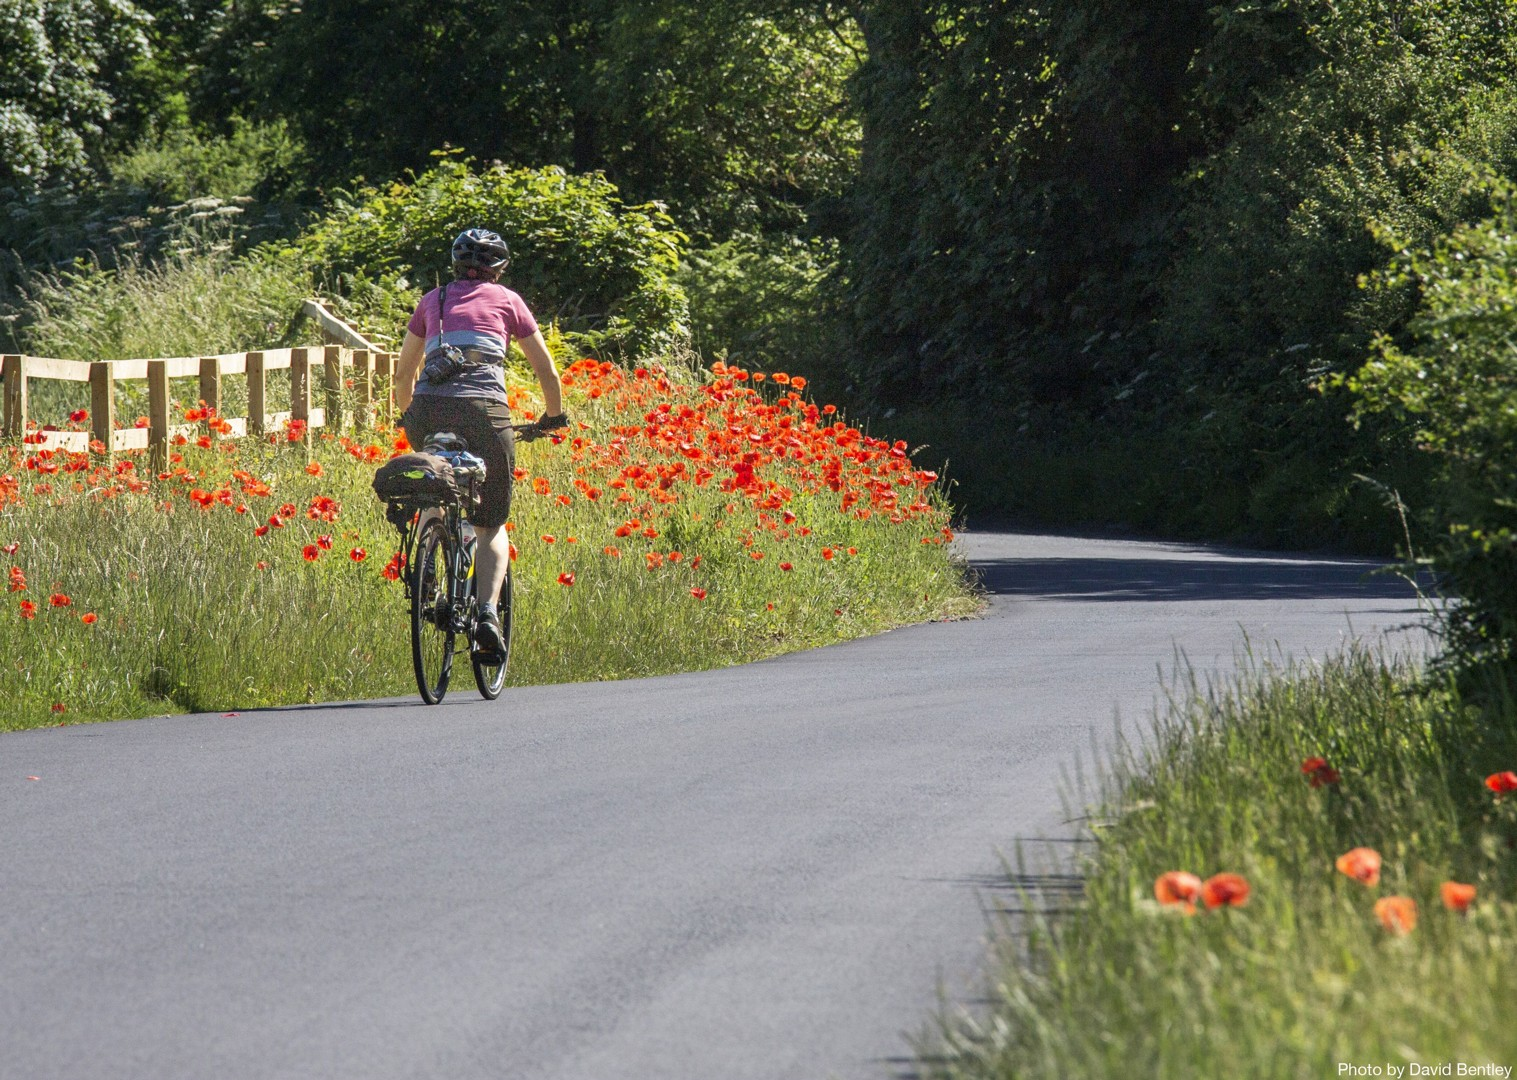 Hadrians-Cycleway-Self-Guided-Leisure-Cycling-Holiday-Cumbria-and-Northumberland.jpg - UK - Hadrian's Cycleway - 2 Days Cycling - Self-Guided Leisure Cycling Holiday - Leisure Cycling